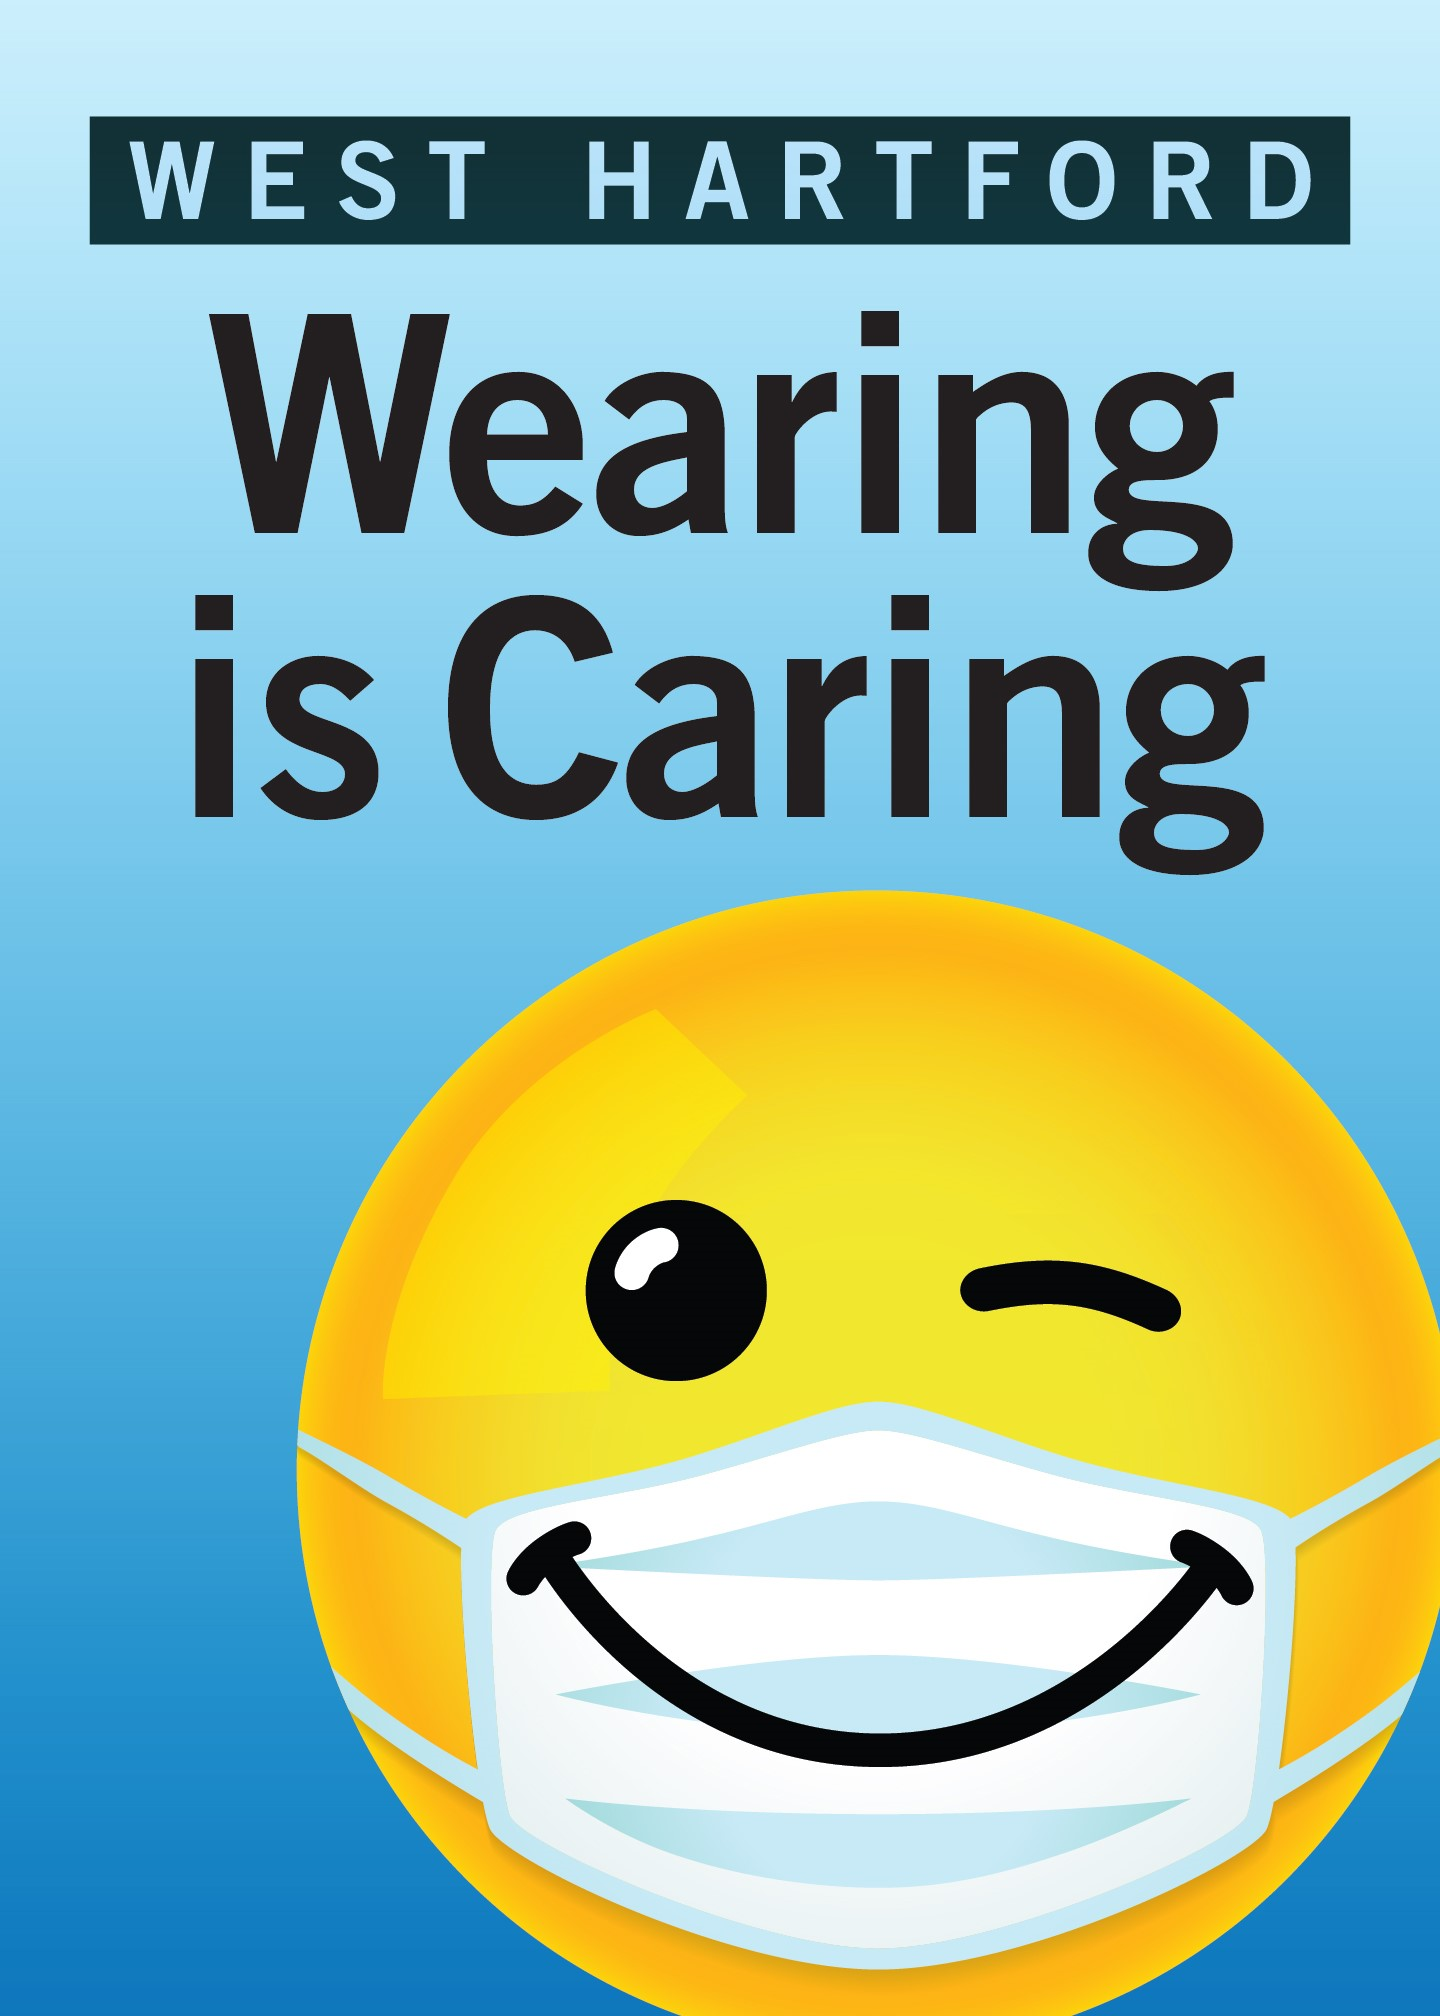 WH-Wearing-is-Caring.jpg